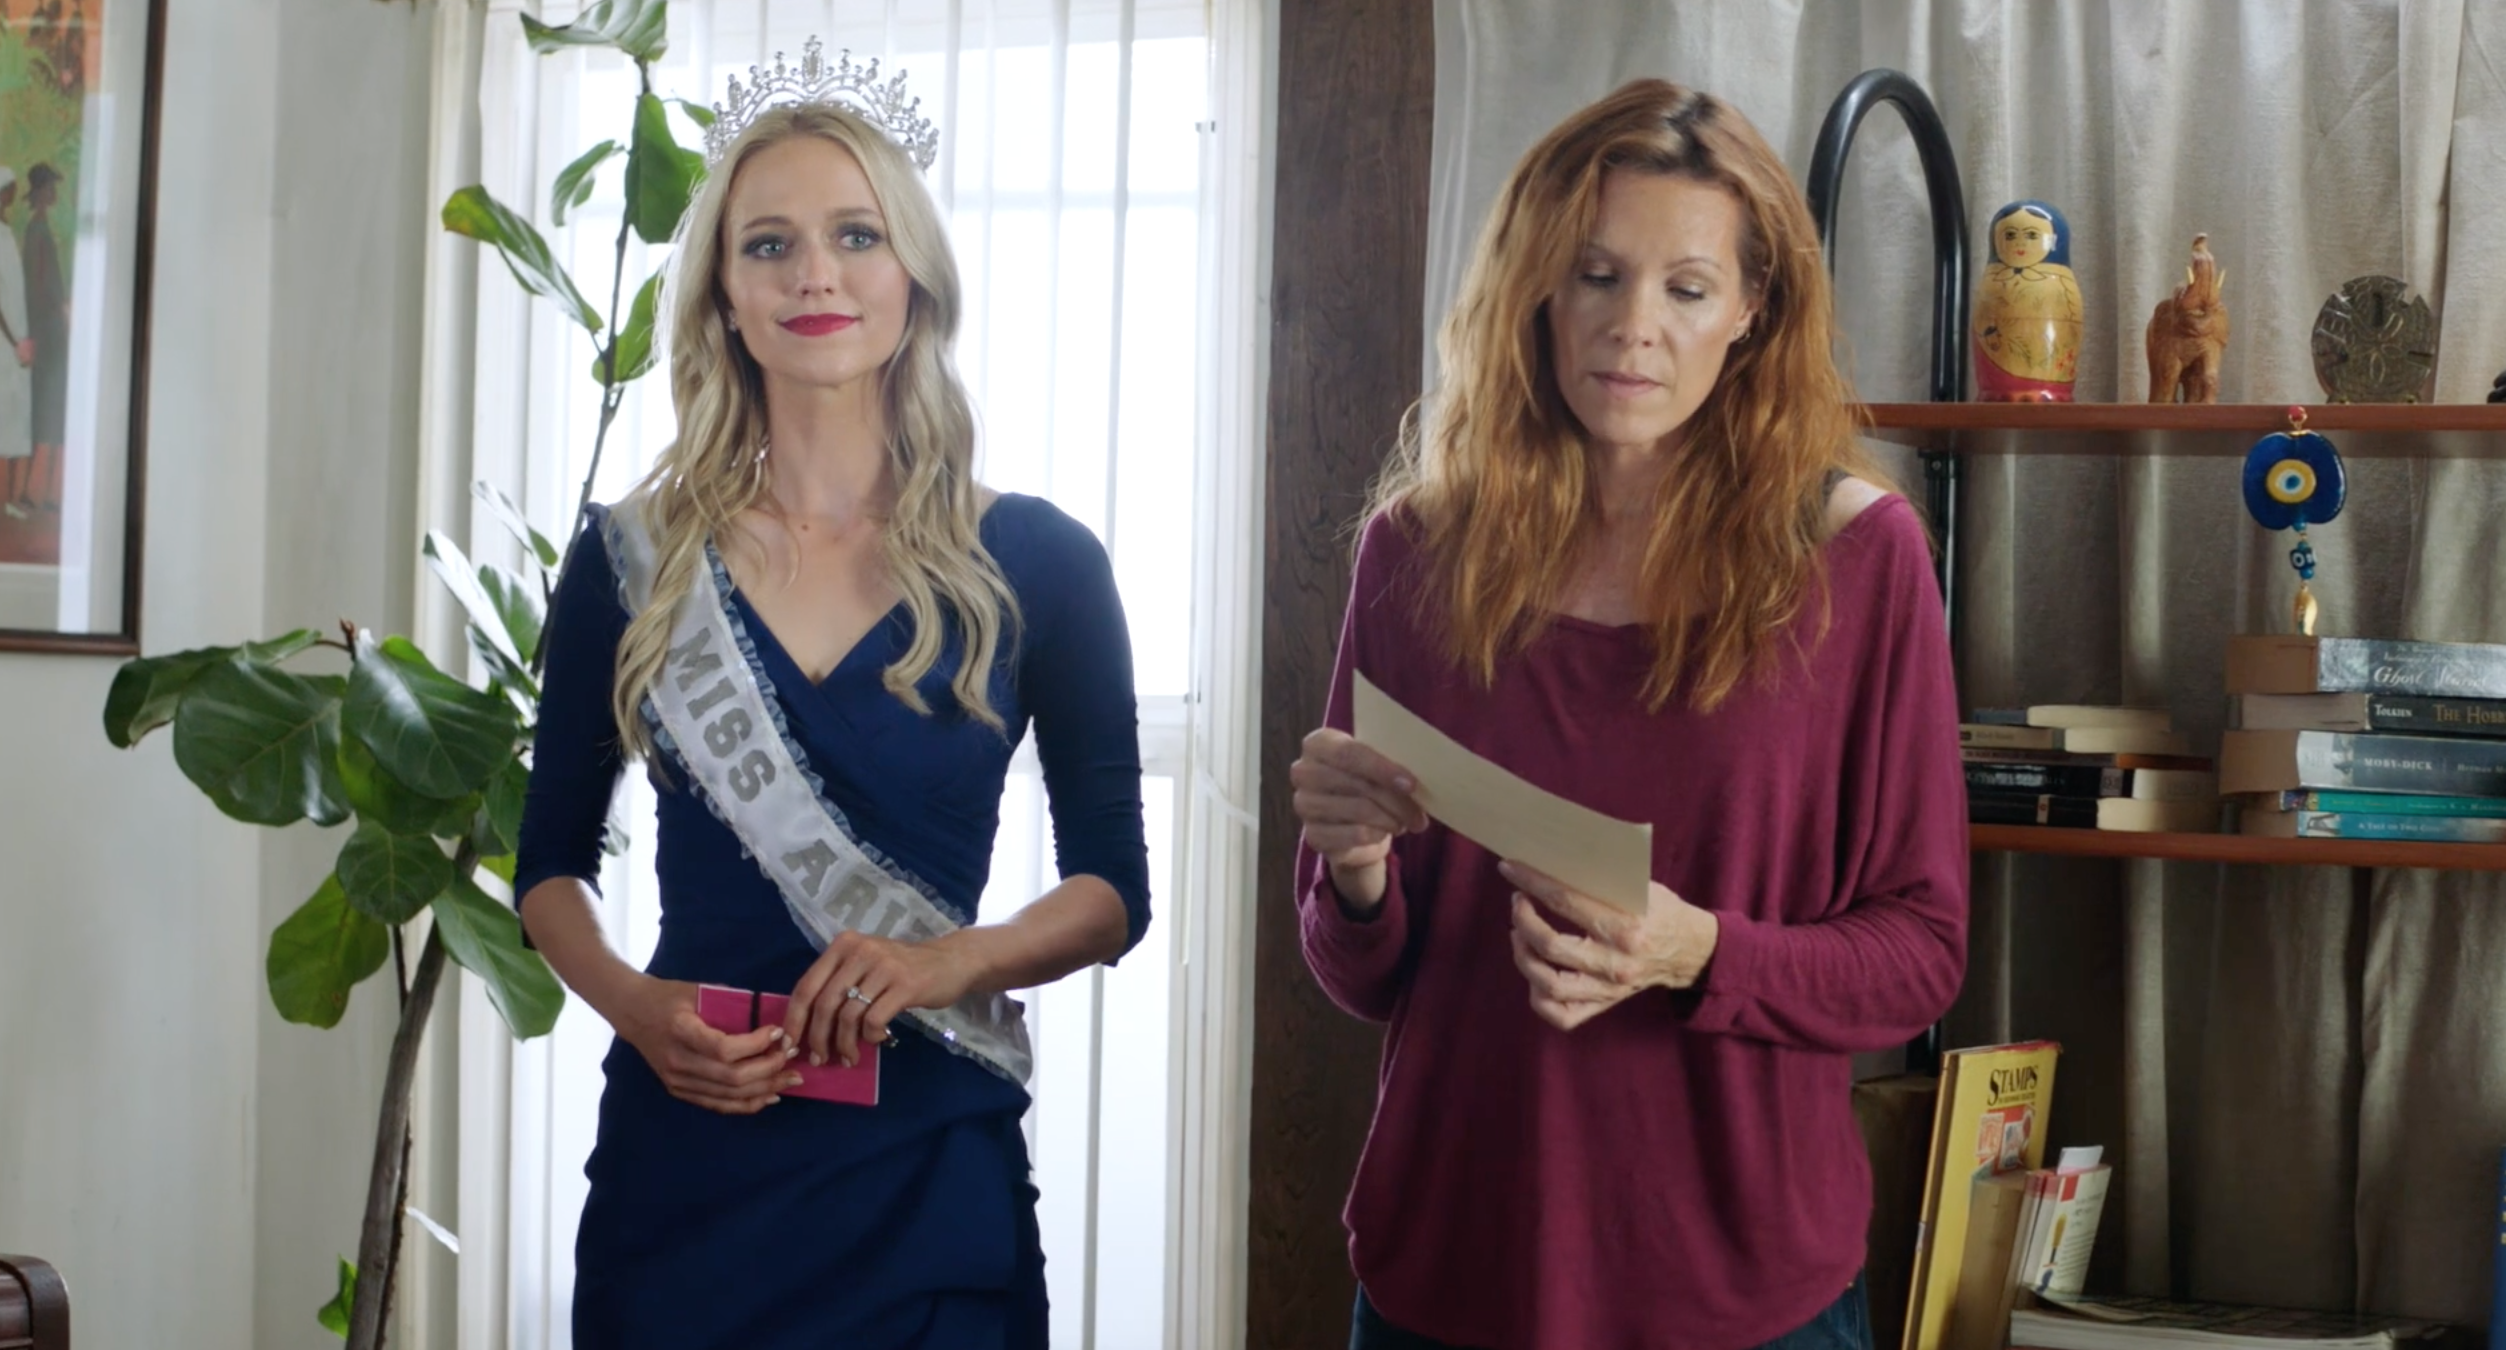 """Robyn Lively as one of the residents of a women's shelter introduces guest speaker and former pageant winner Johanna Braddy in """"Miss Arizona."""""""